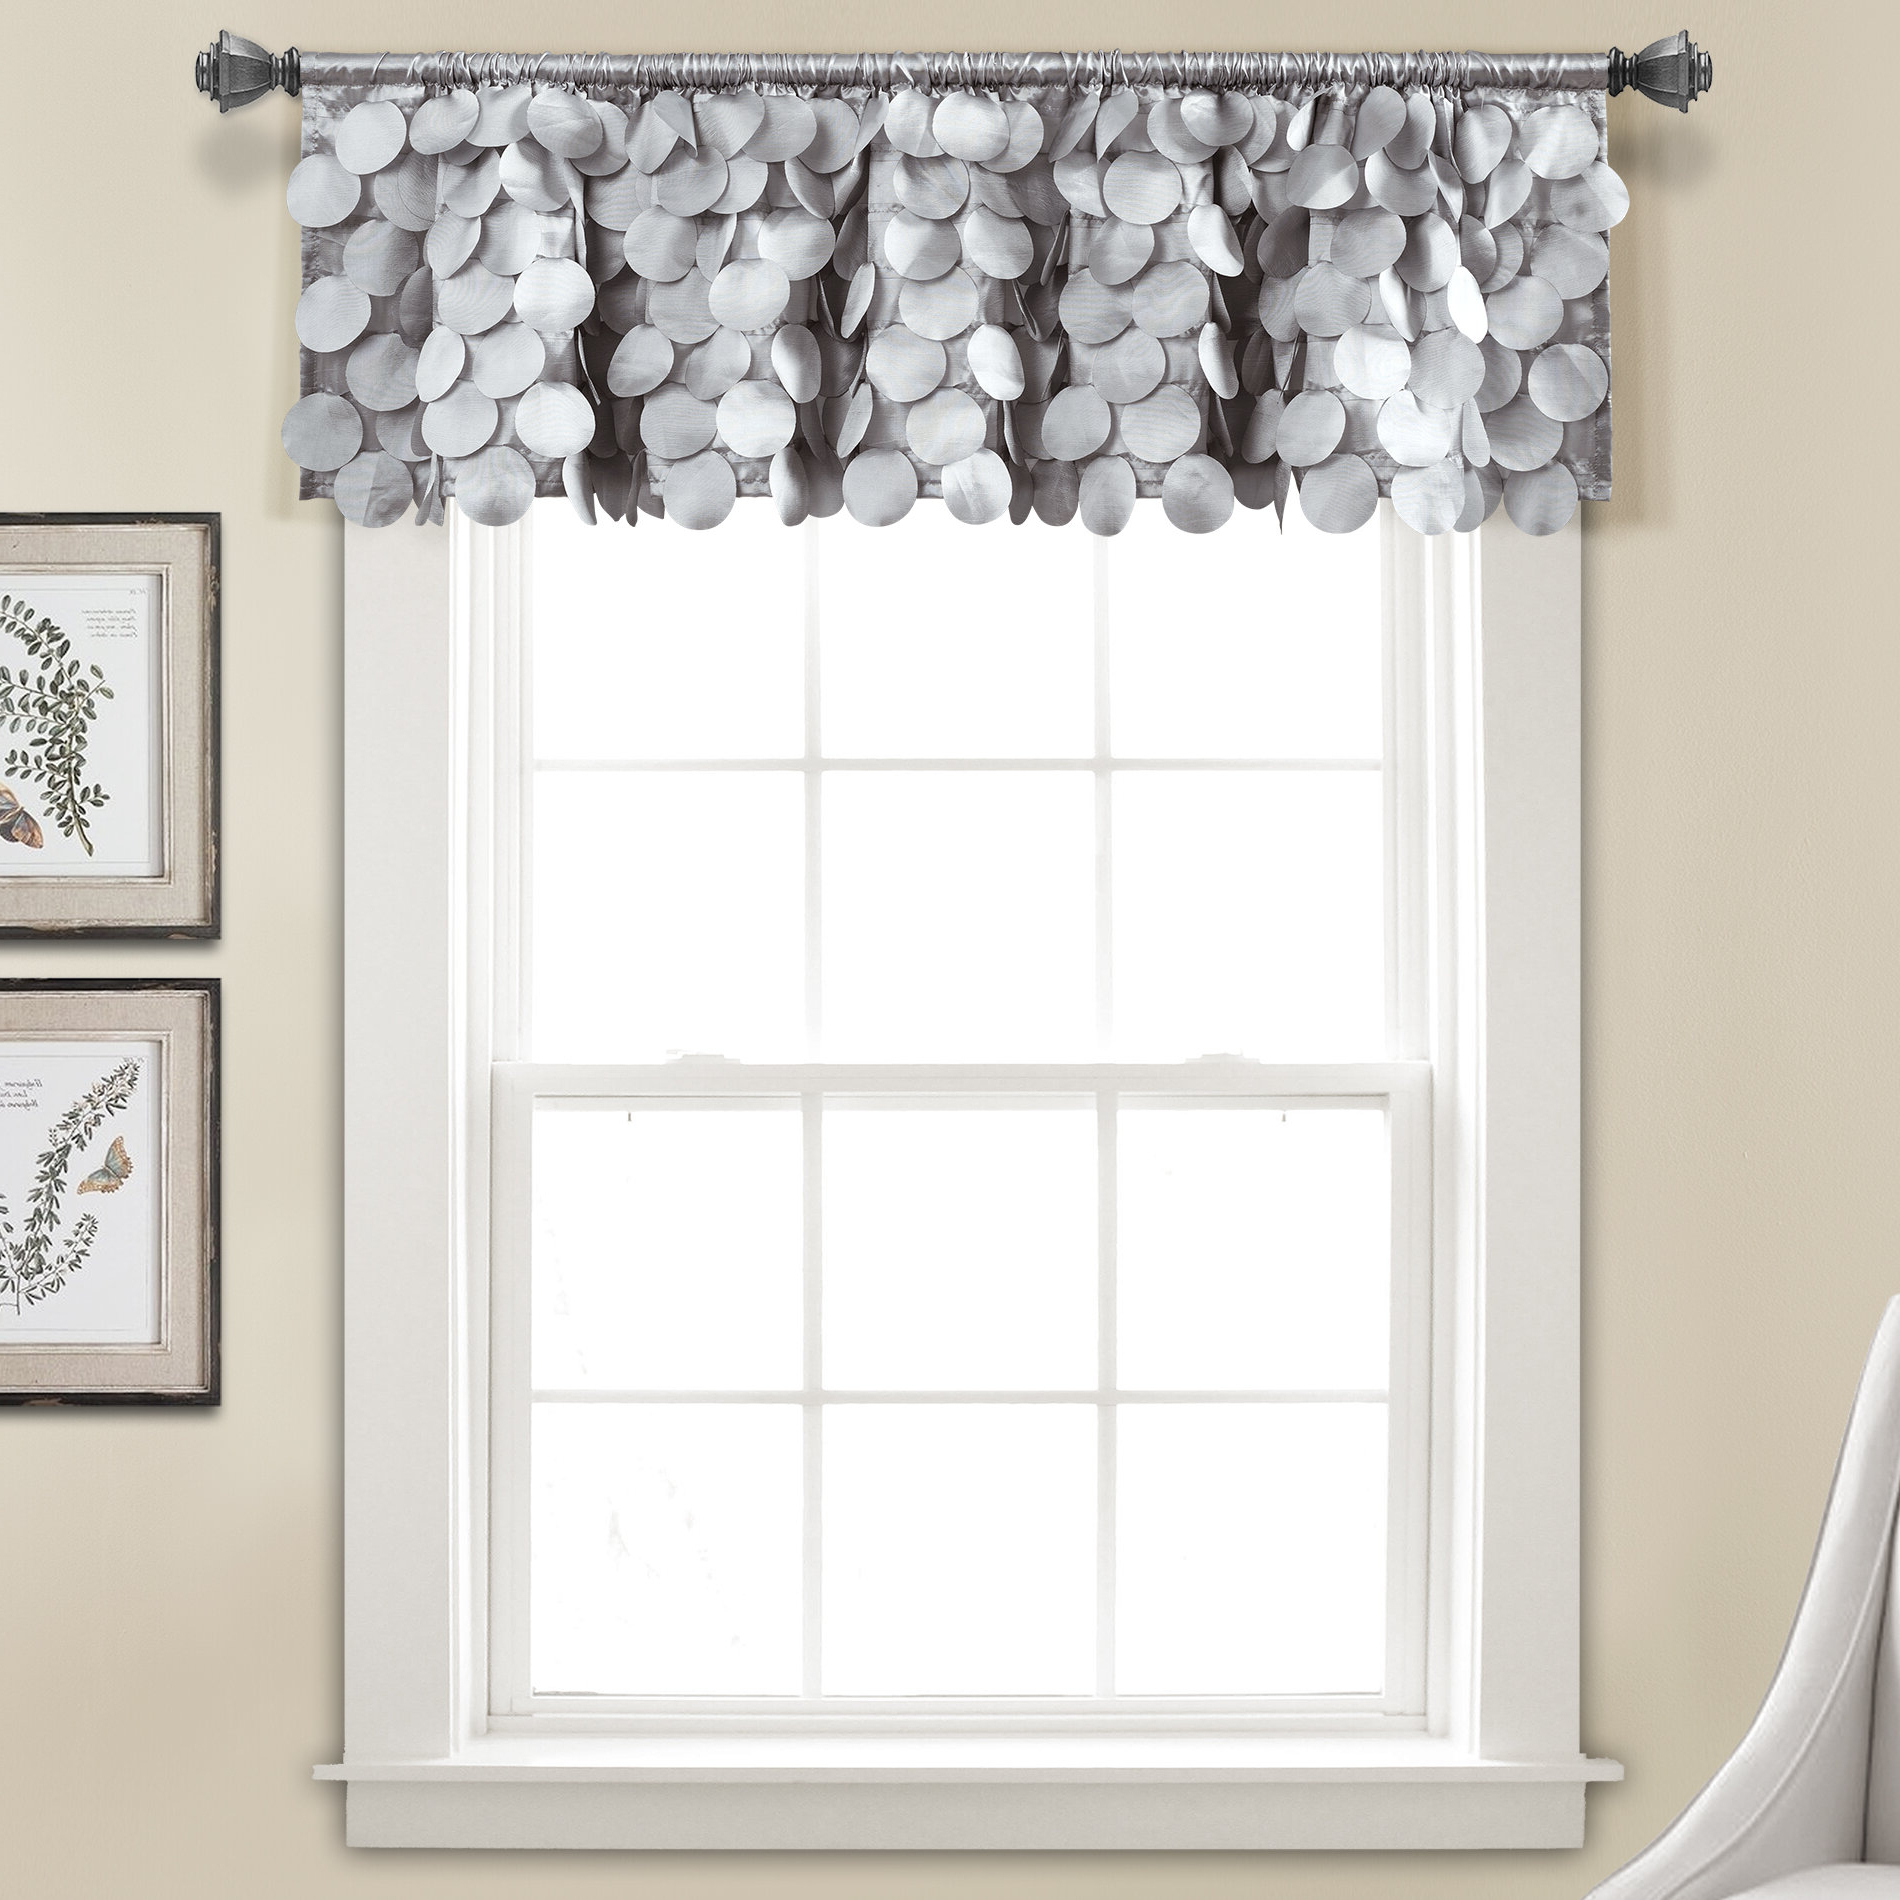 Luxury Light Filtering Straight Curtain Valances Regarding Fashionable Willa Arlo Interiors Willingham Window Valance & Reviews (View 9 of 20)